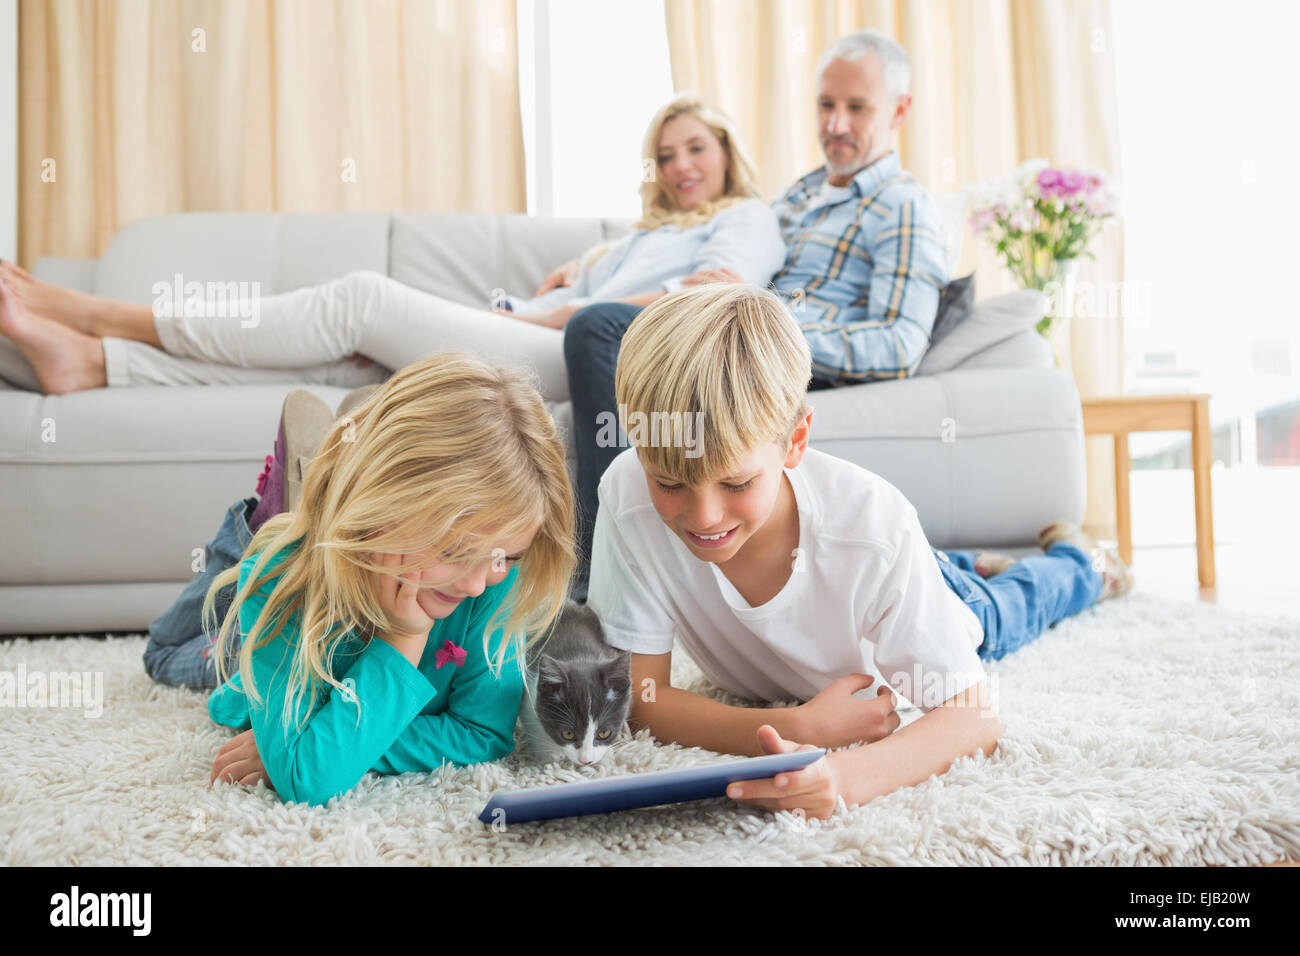 Happy family spending time together - Stock Image